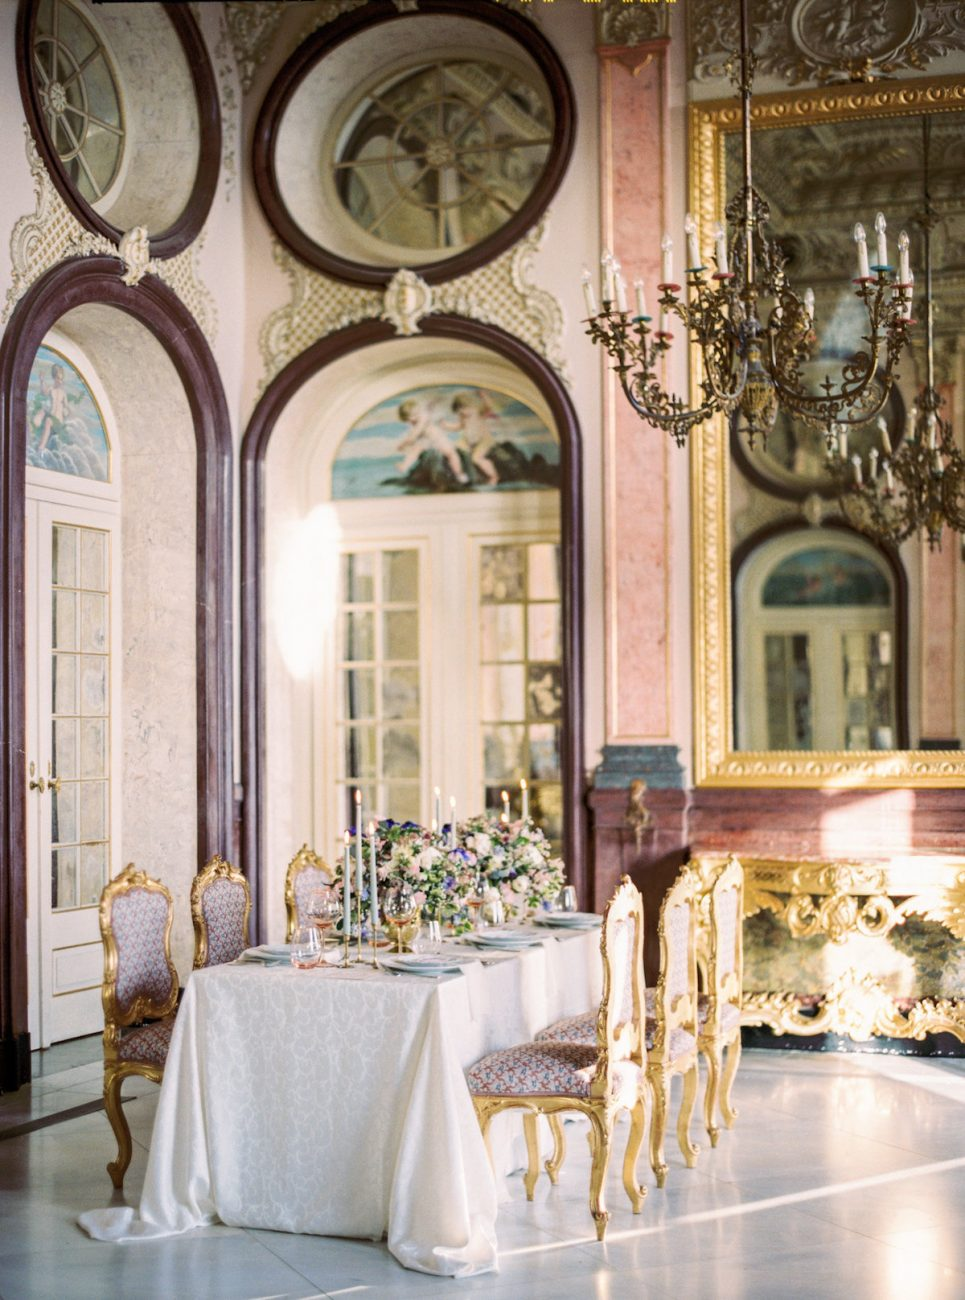 Palace Wedding Inspiration - table setting in palace